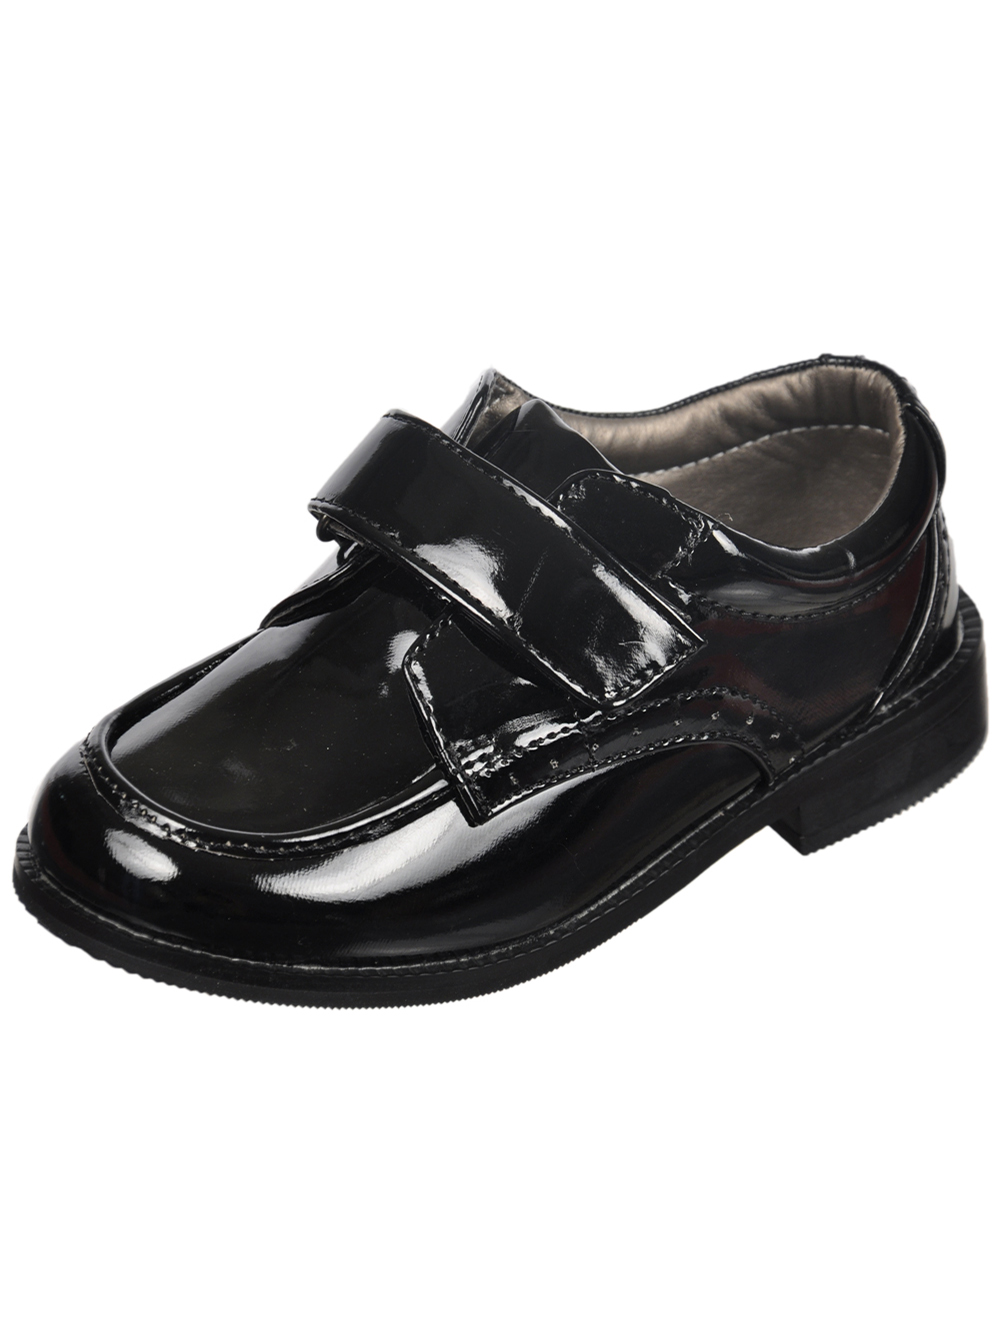 Josmo Quotoreillequot Brogue Dress Shoes Toddler Boys Sizes 5